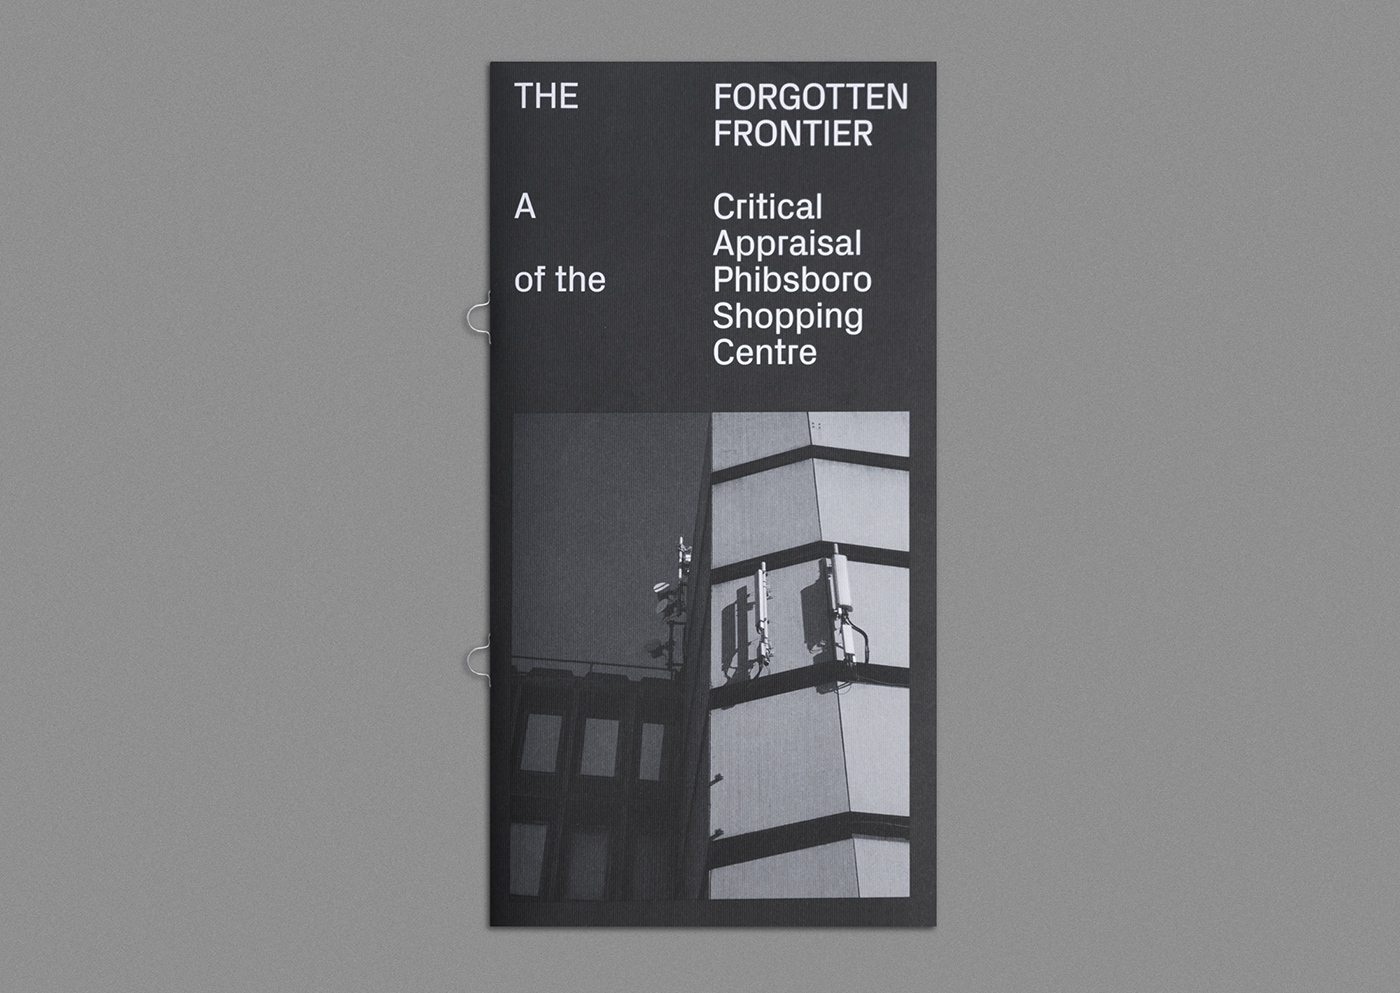 Cover image: The Forgotten Frontier: A Critical Appraisal of the Phibsboro Shopping Centre